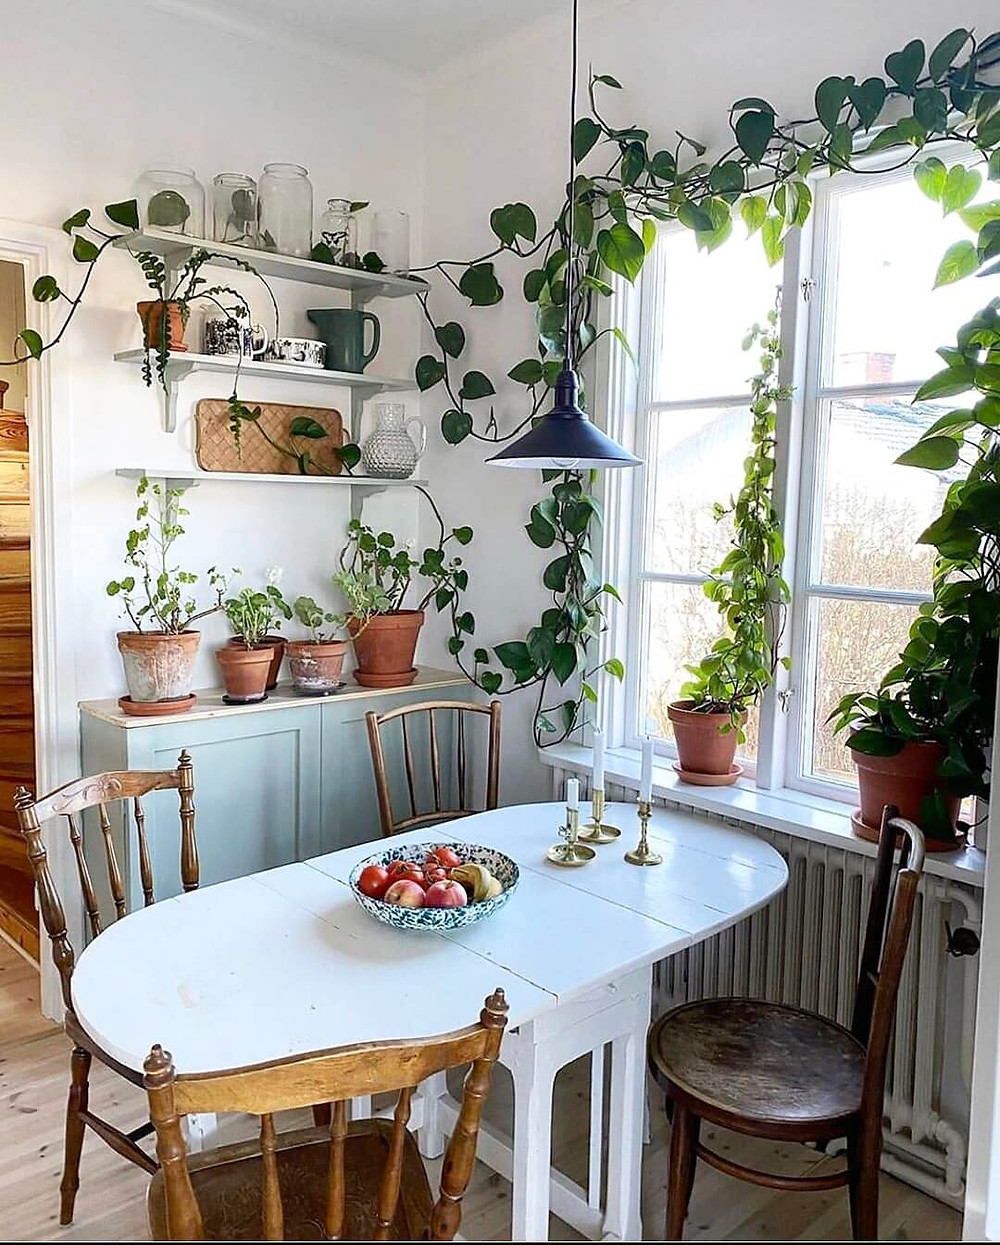 Dining table near the window as a perfect example of Biophilic design concept.